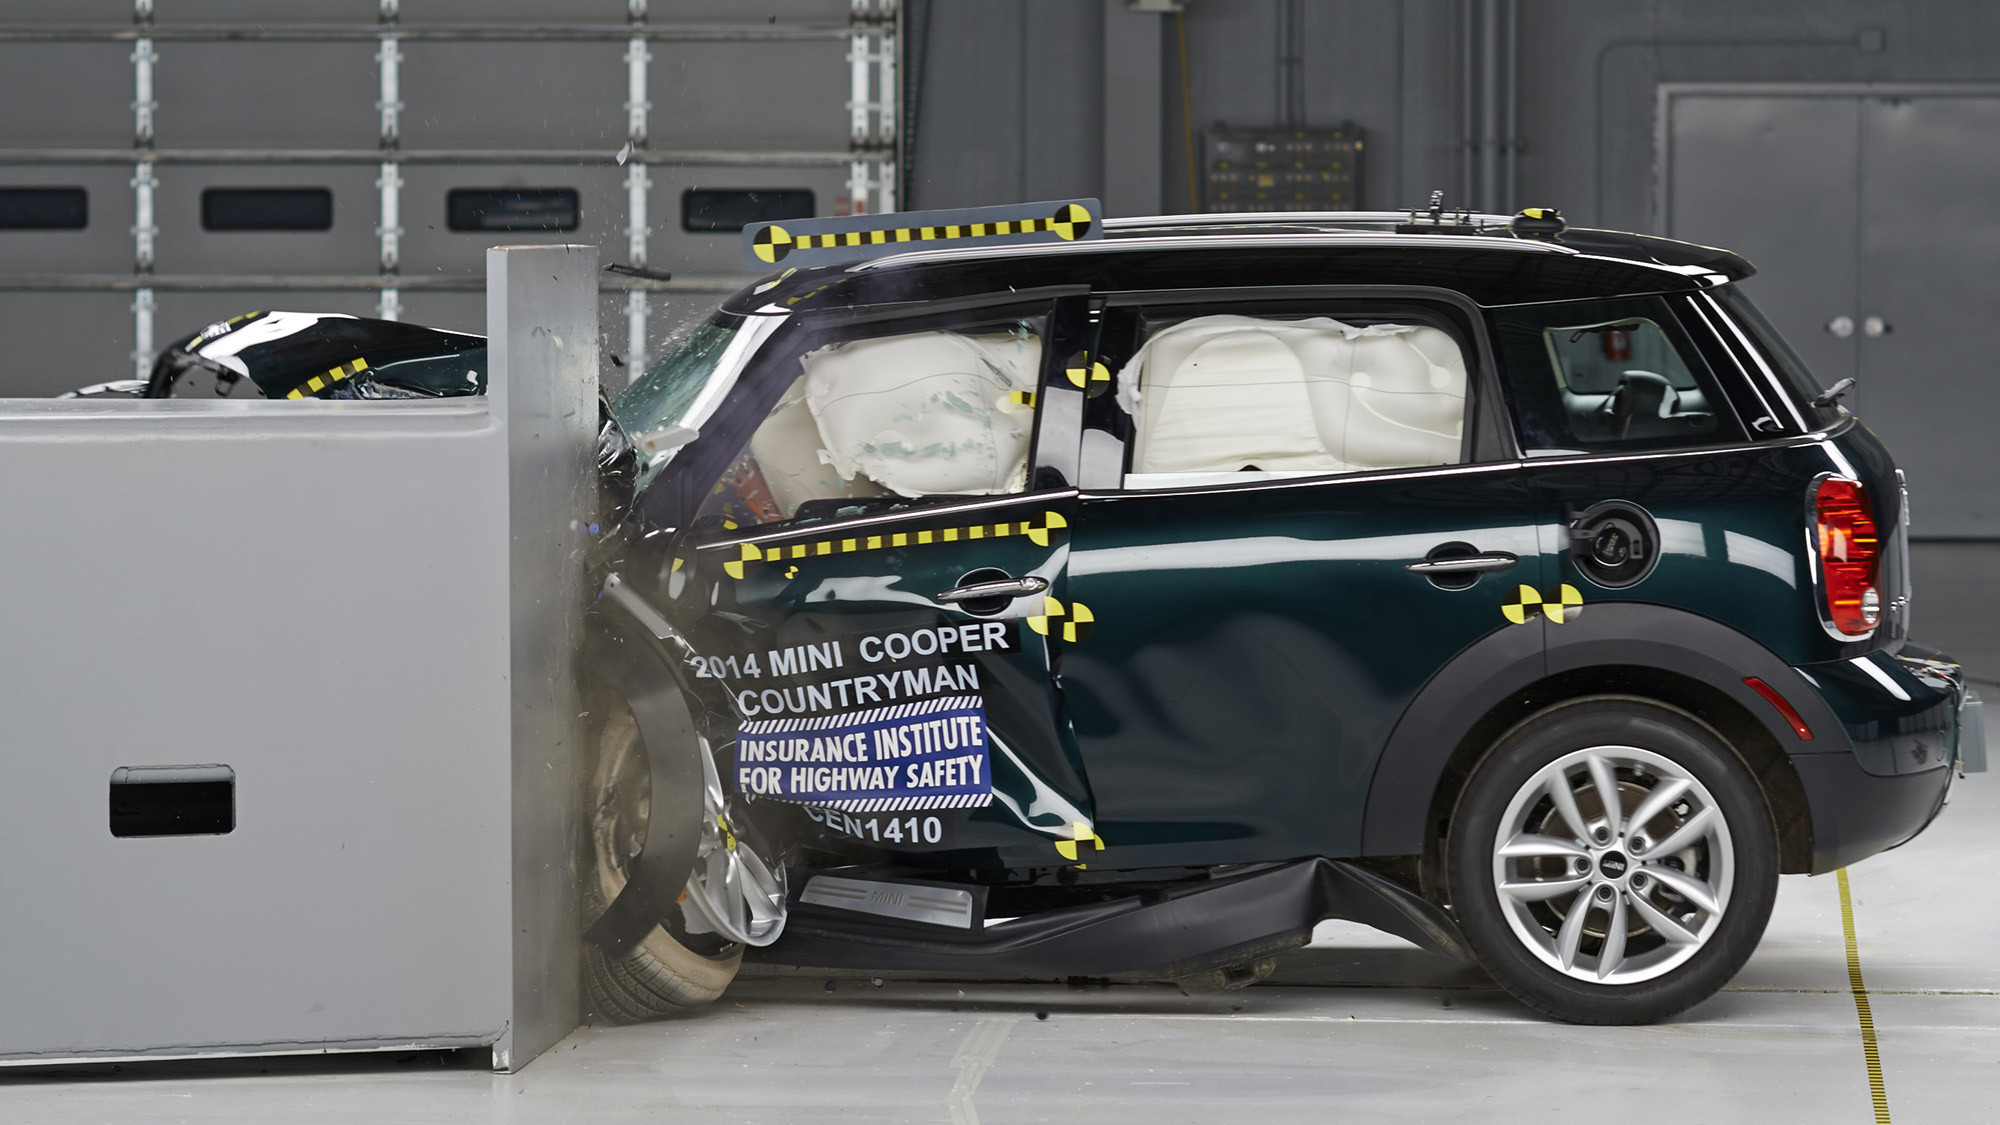 Mini cooper countryman wins small car crash tests nissan leaf fails la times